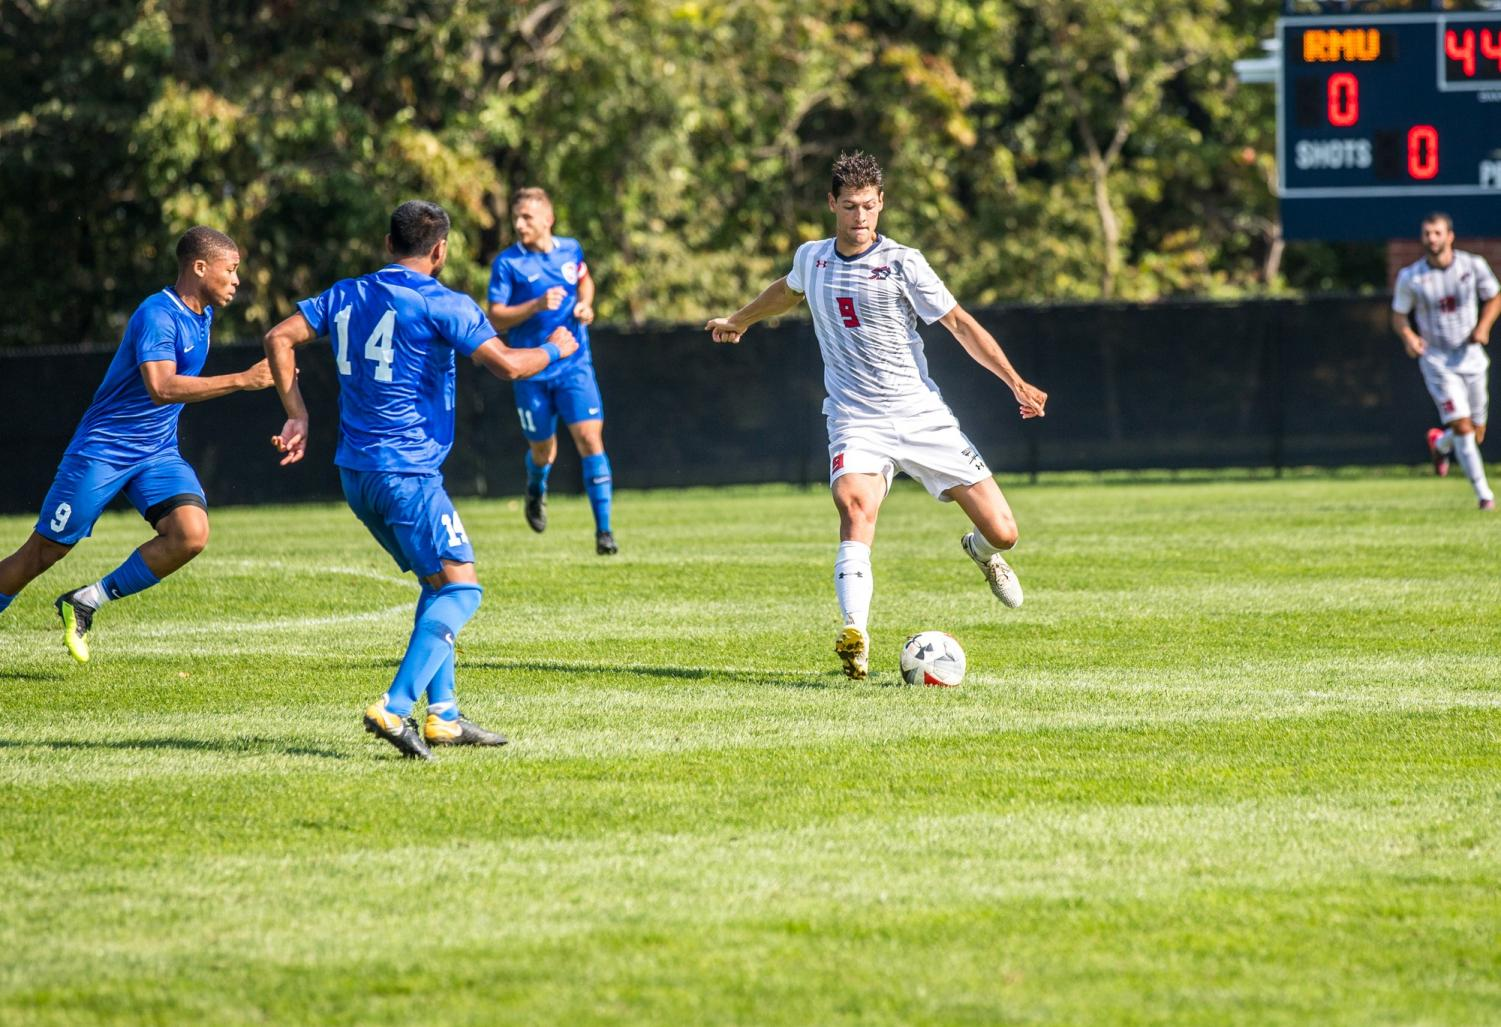 Guilherme Fanck passes the ball during a game against Saint Francis Brooklyn Photo credit: David Auth